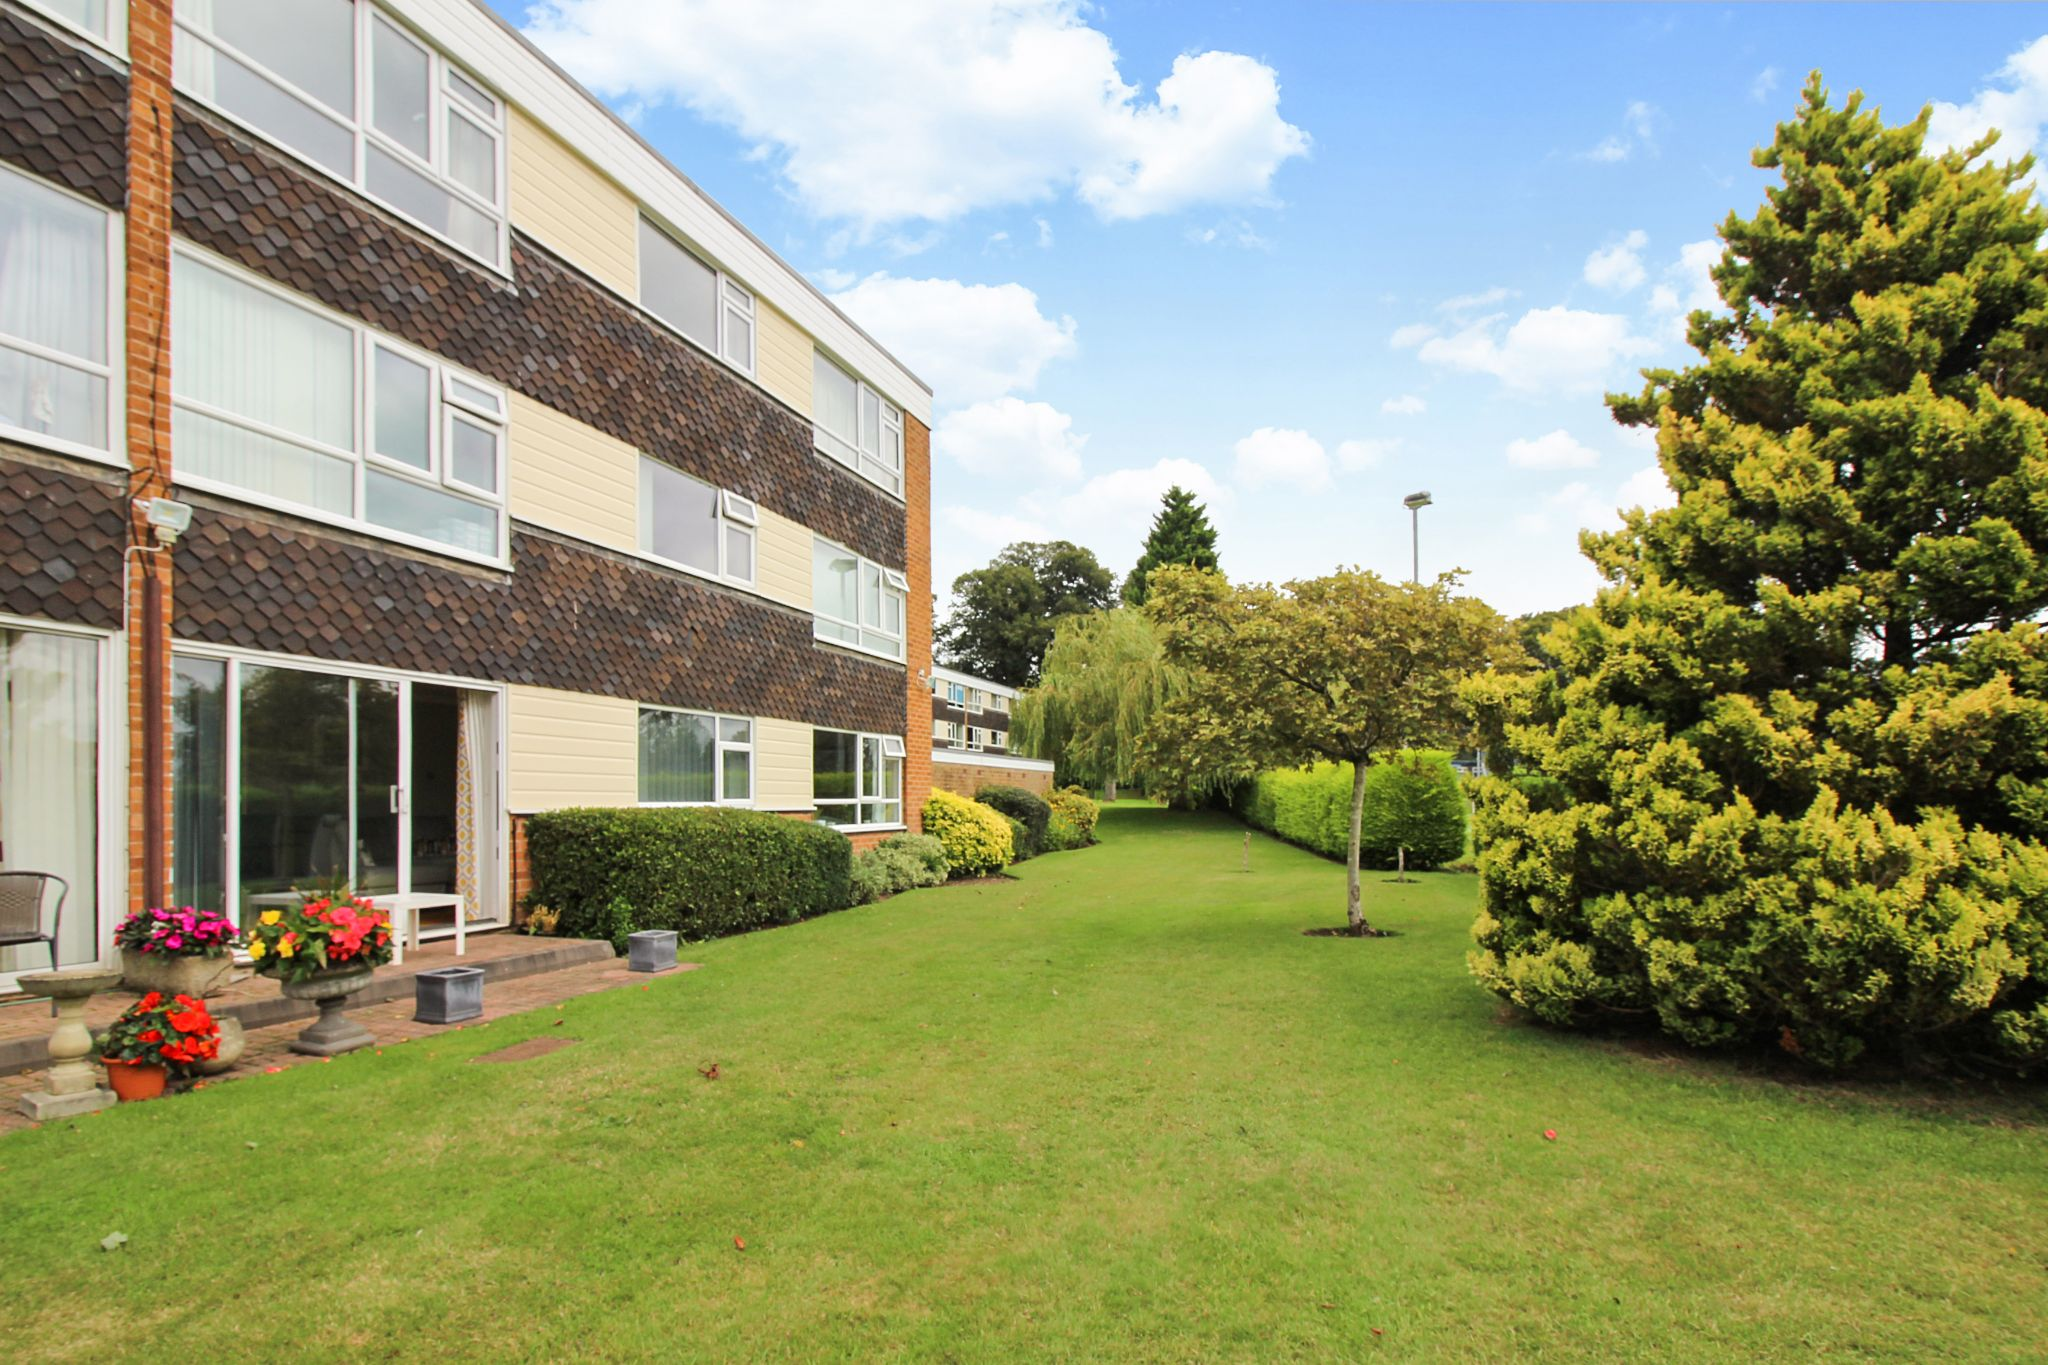 2 bedroom ground floor flat/apartment For Sale in Solihull - Photograph 11.